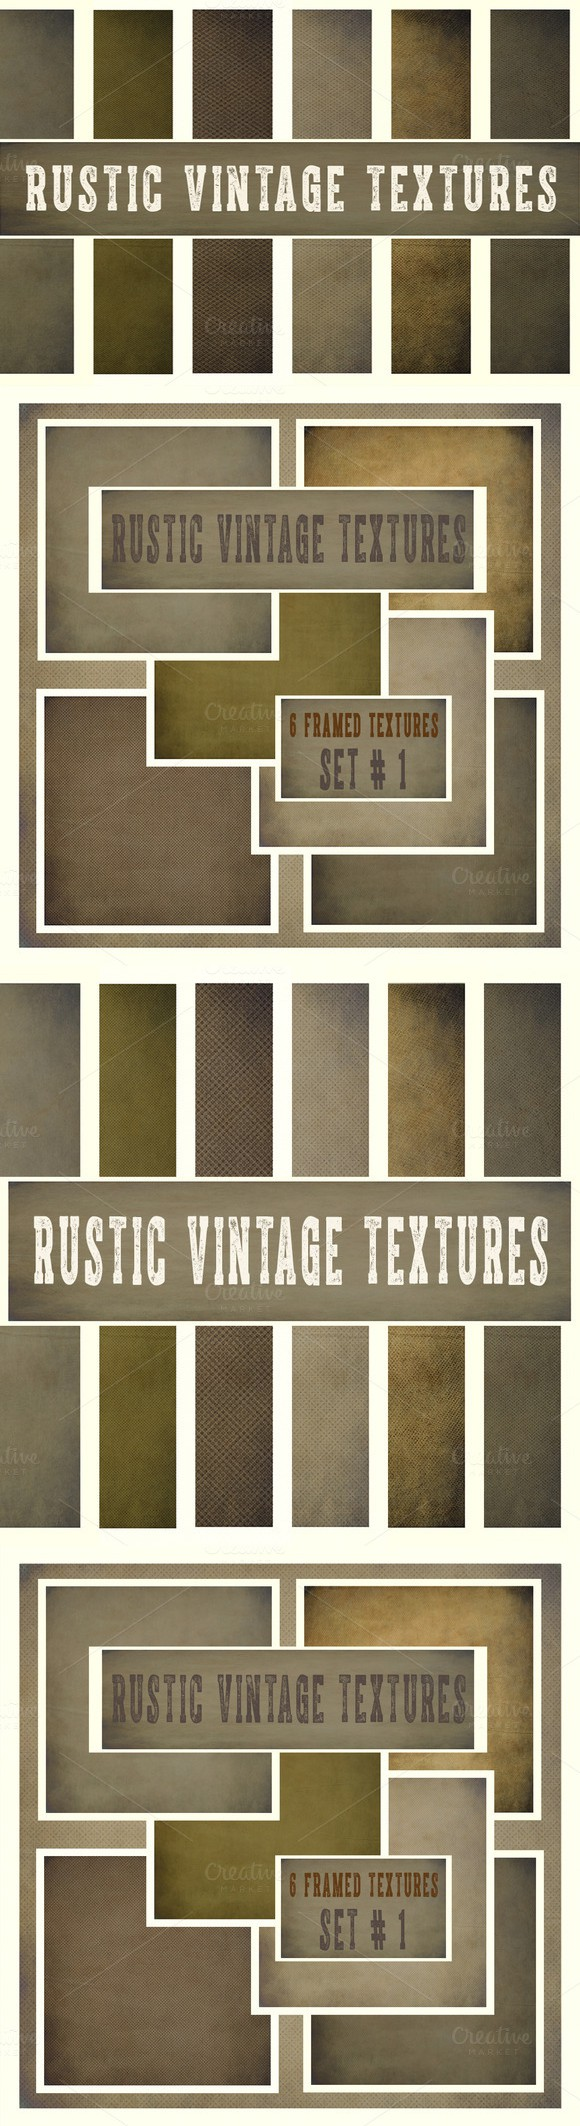 Rustic Vintage Background Textures. Textures. $4.00